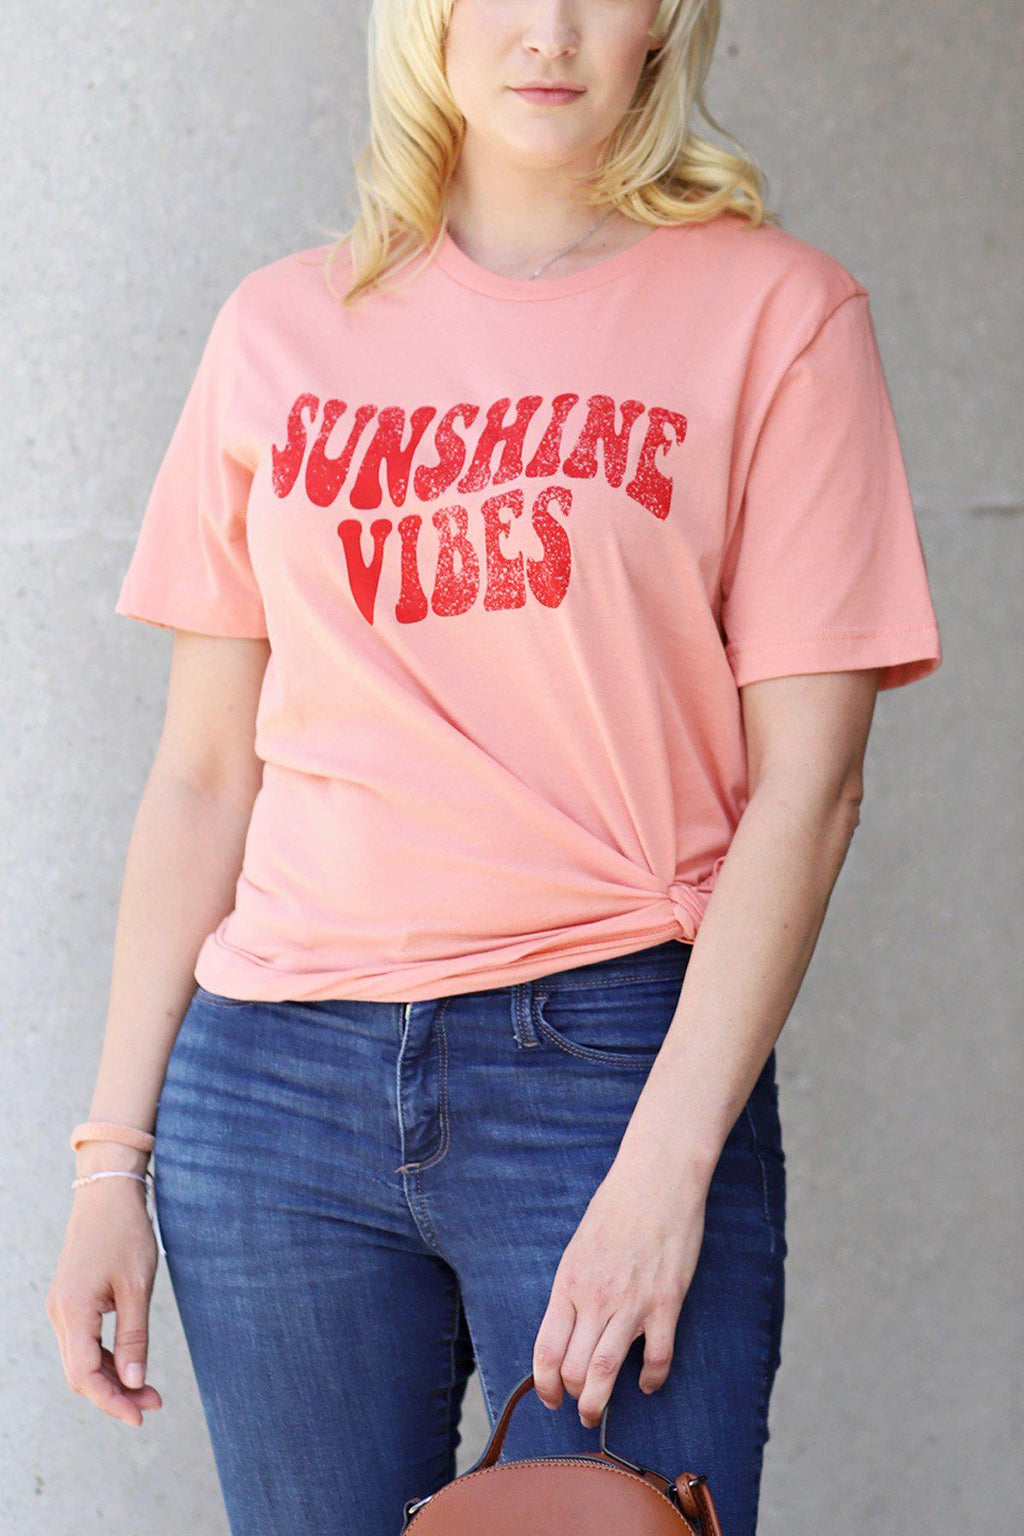 Sunshine Vibes Graphic Top - Gallery 512 Boutique